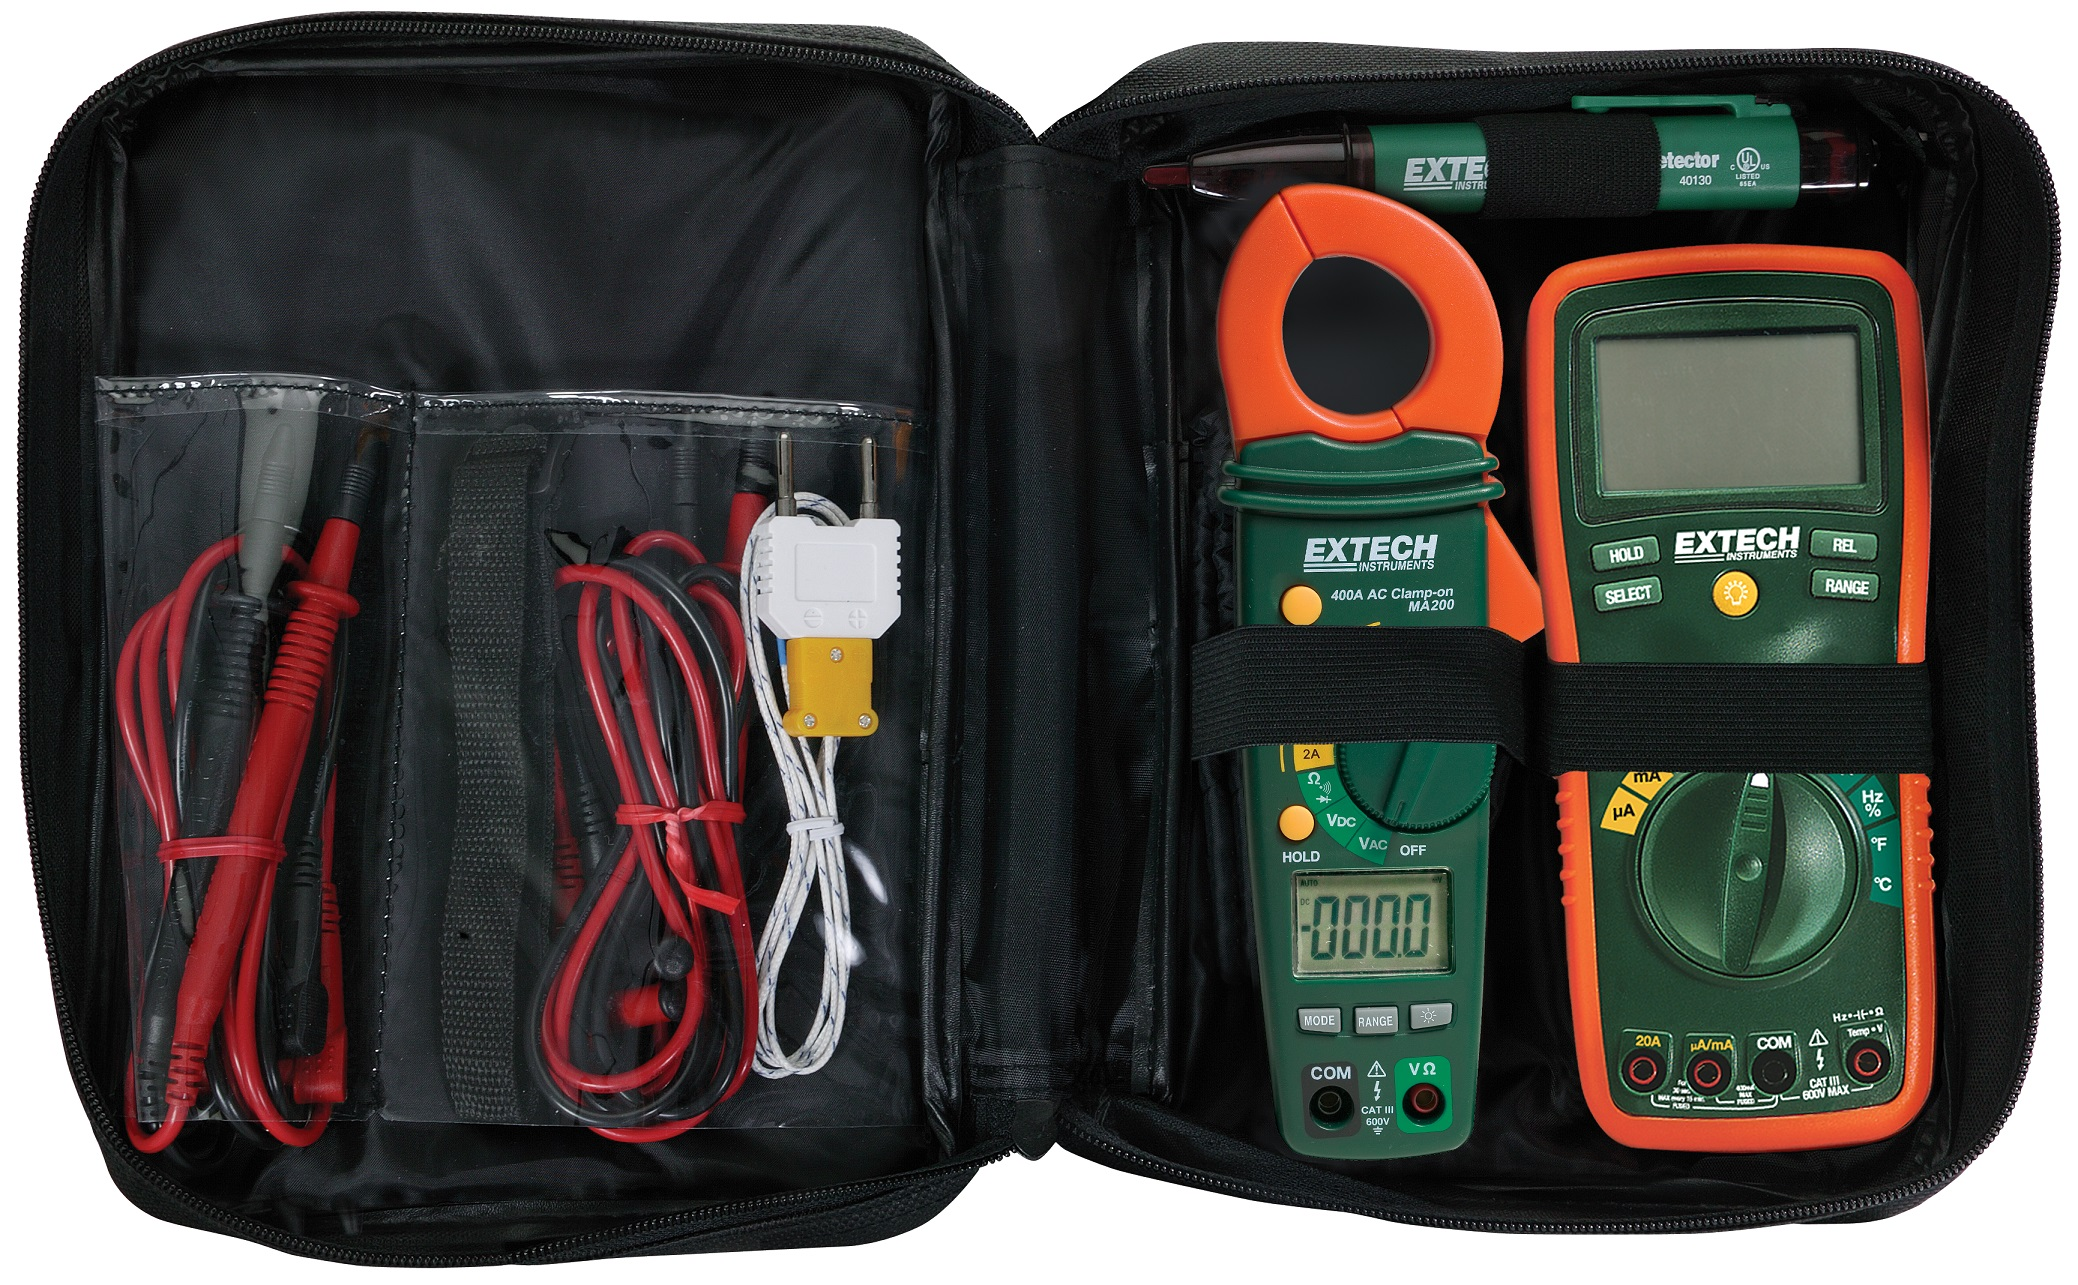 Extech Cb10 Ac Circuit Breaker Finder Receptacle Tester Finders Tk430 Electrical Test Kit